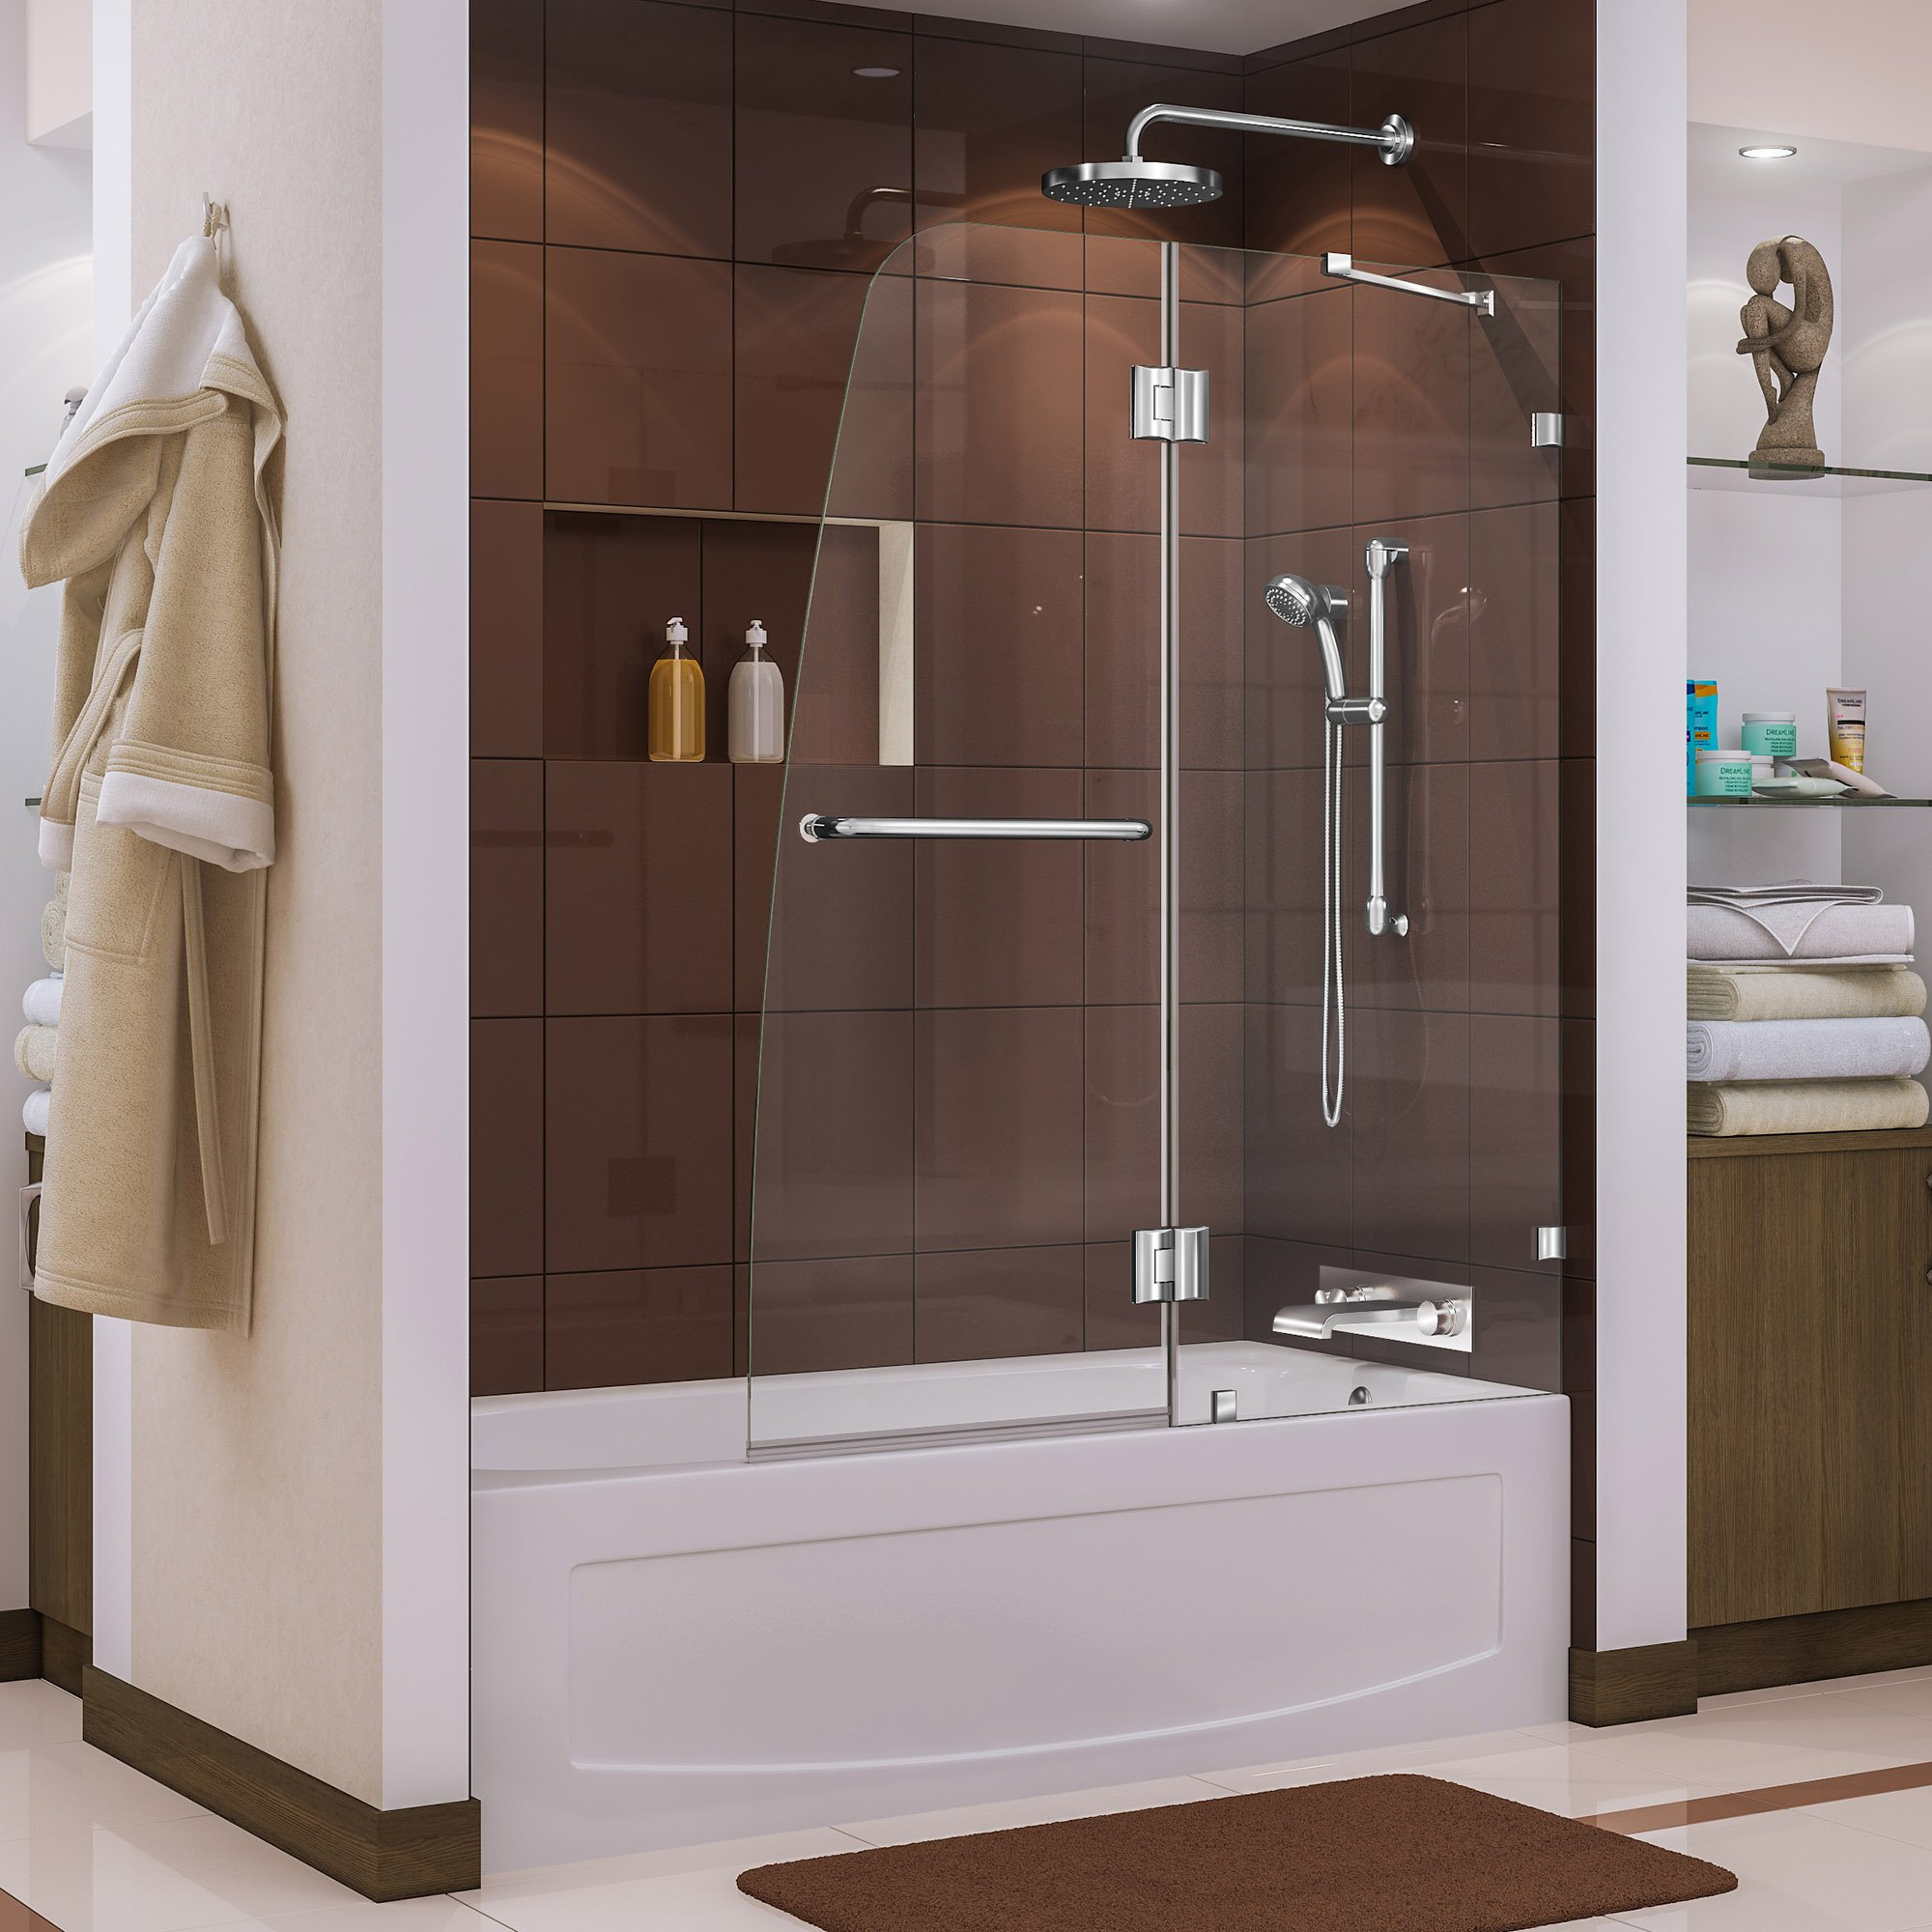 DreamLine Aqua Lux 48 in. W x 58 in. H Frameless Hinged Tub Door in Chrome, SHDR-3348588-01 by DreamLine